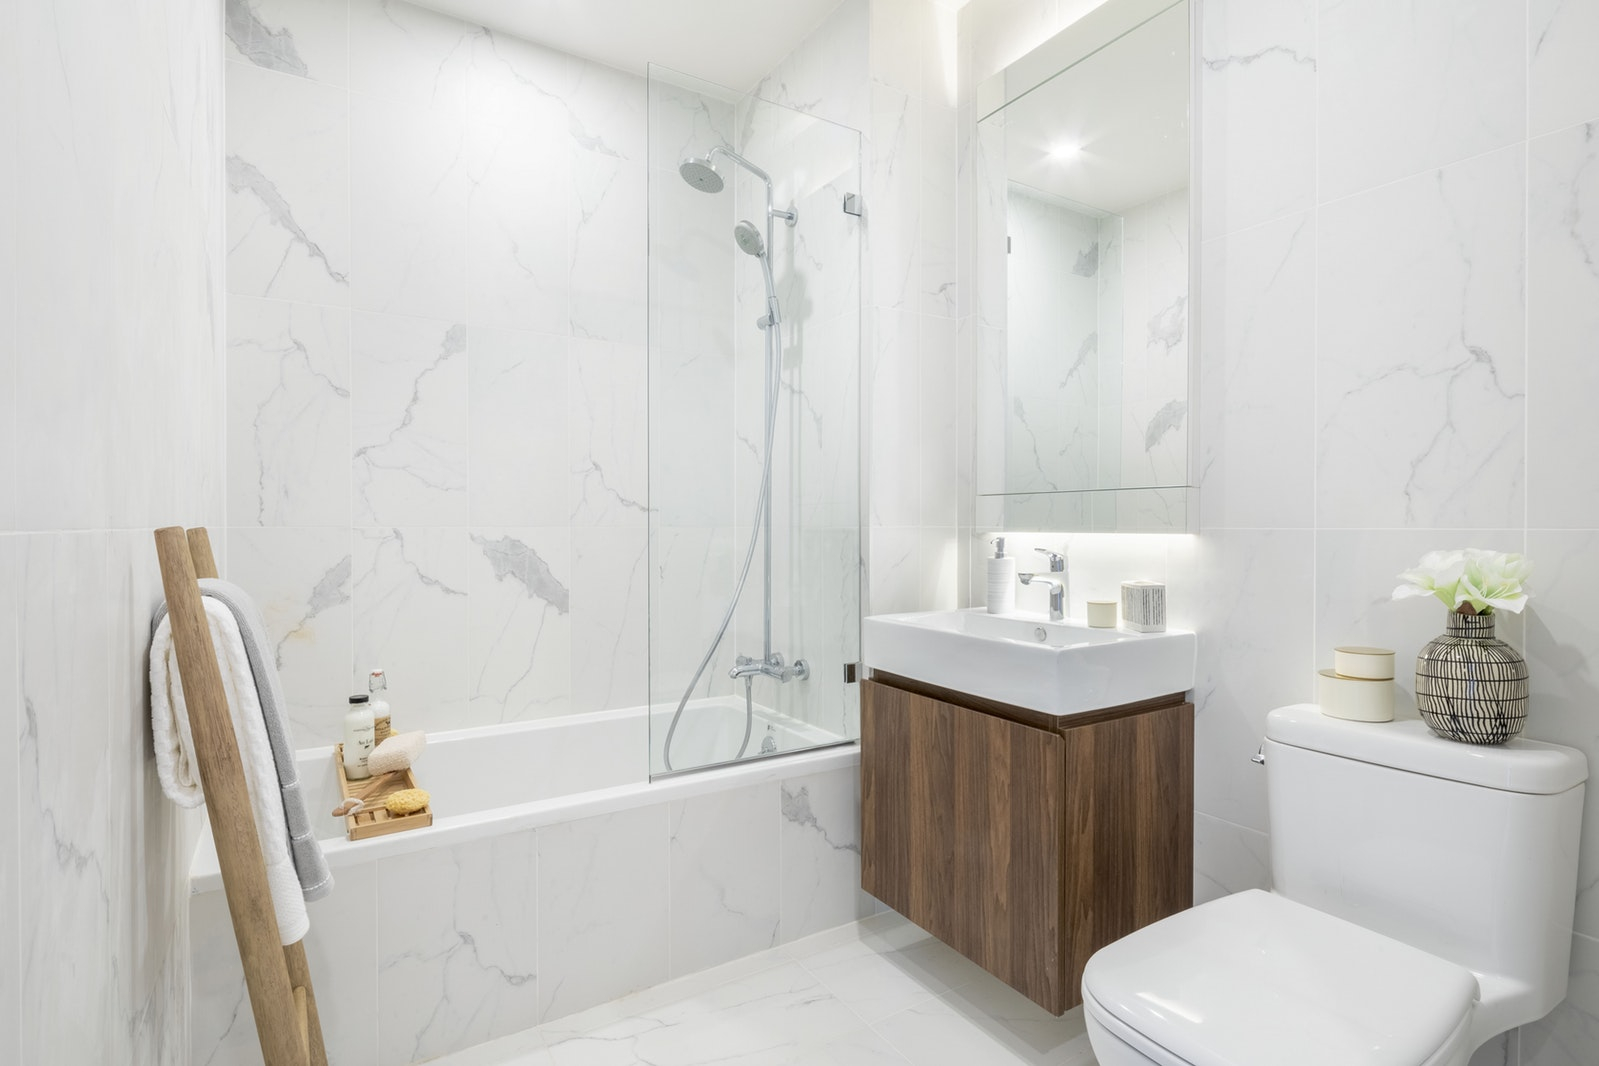 21 Powers Street 1c, Williamsburg, Brooklyn, NY, 11217, $1,350,000, Property For Sale, Halstead Real Estate, Photo 4